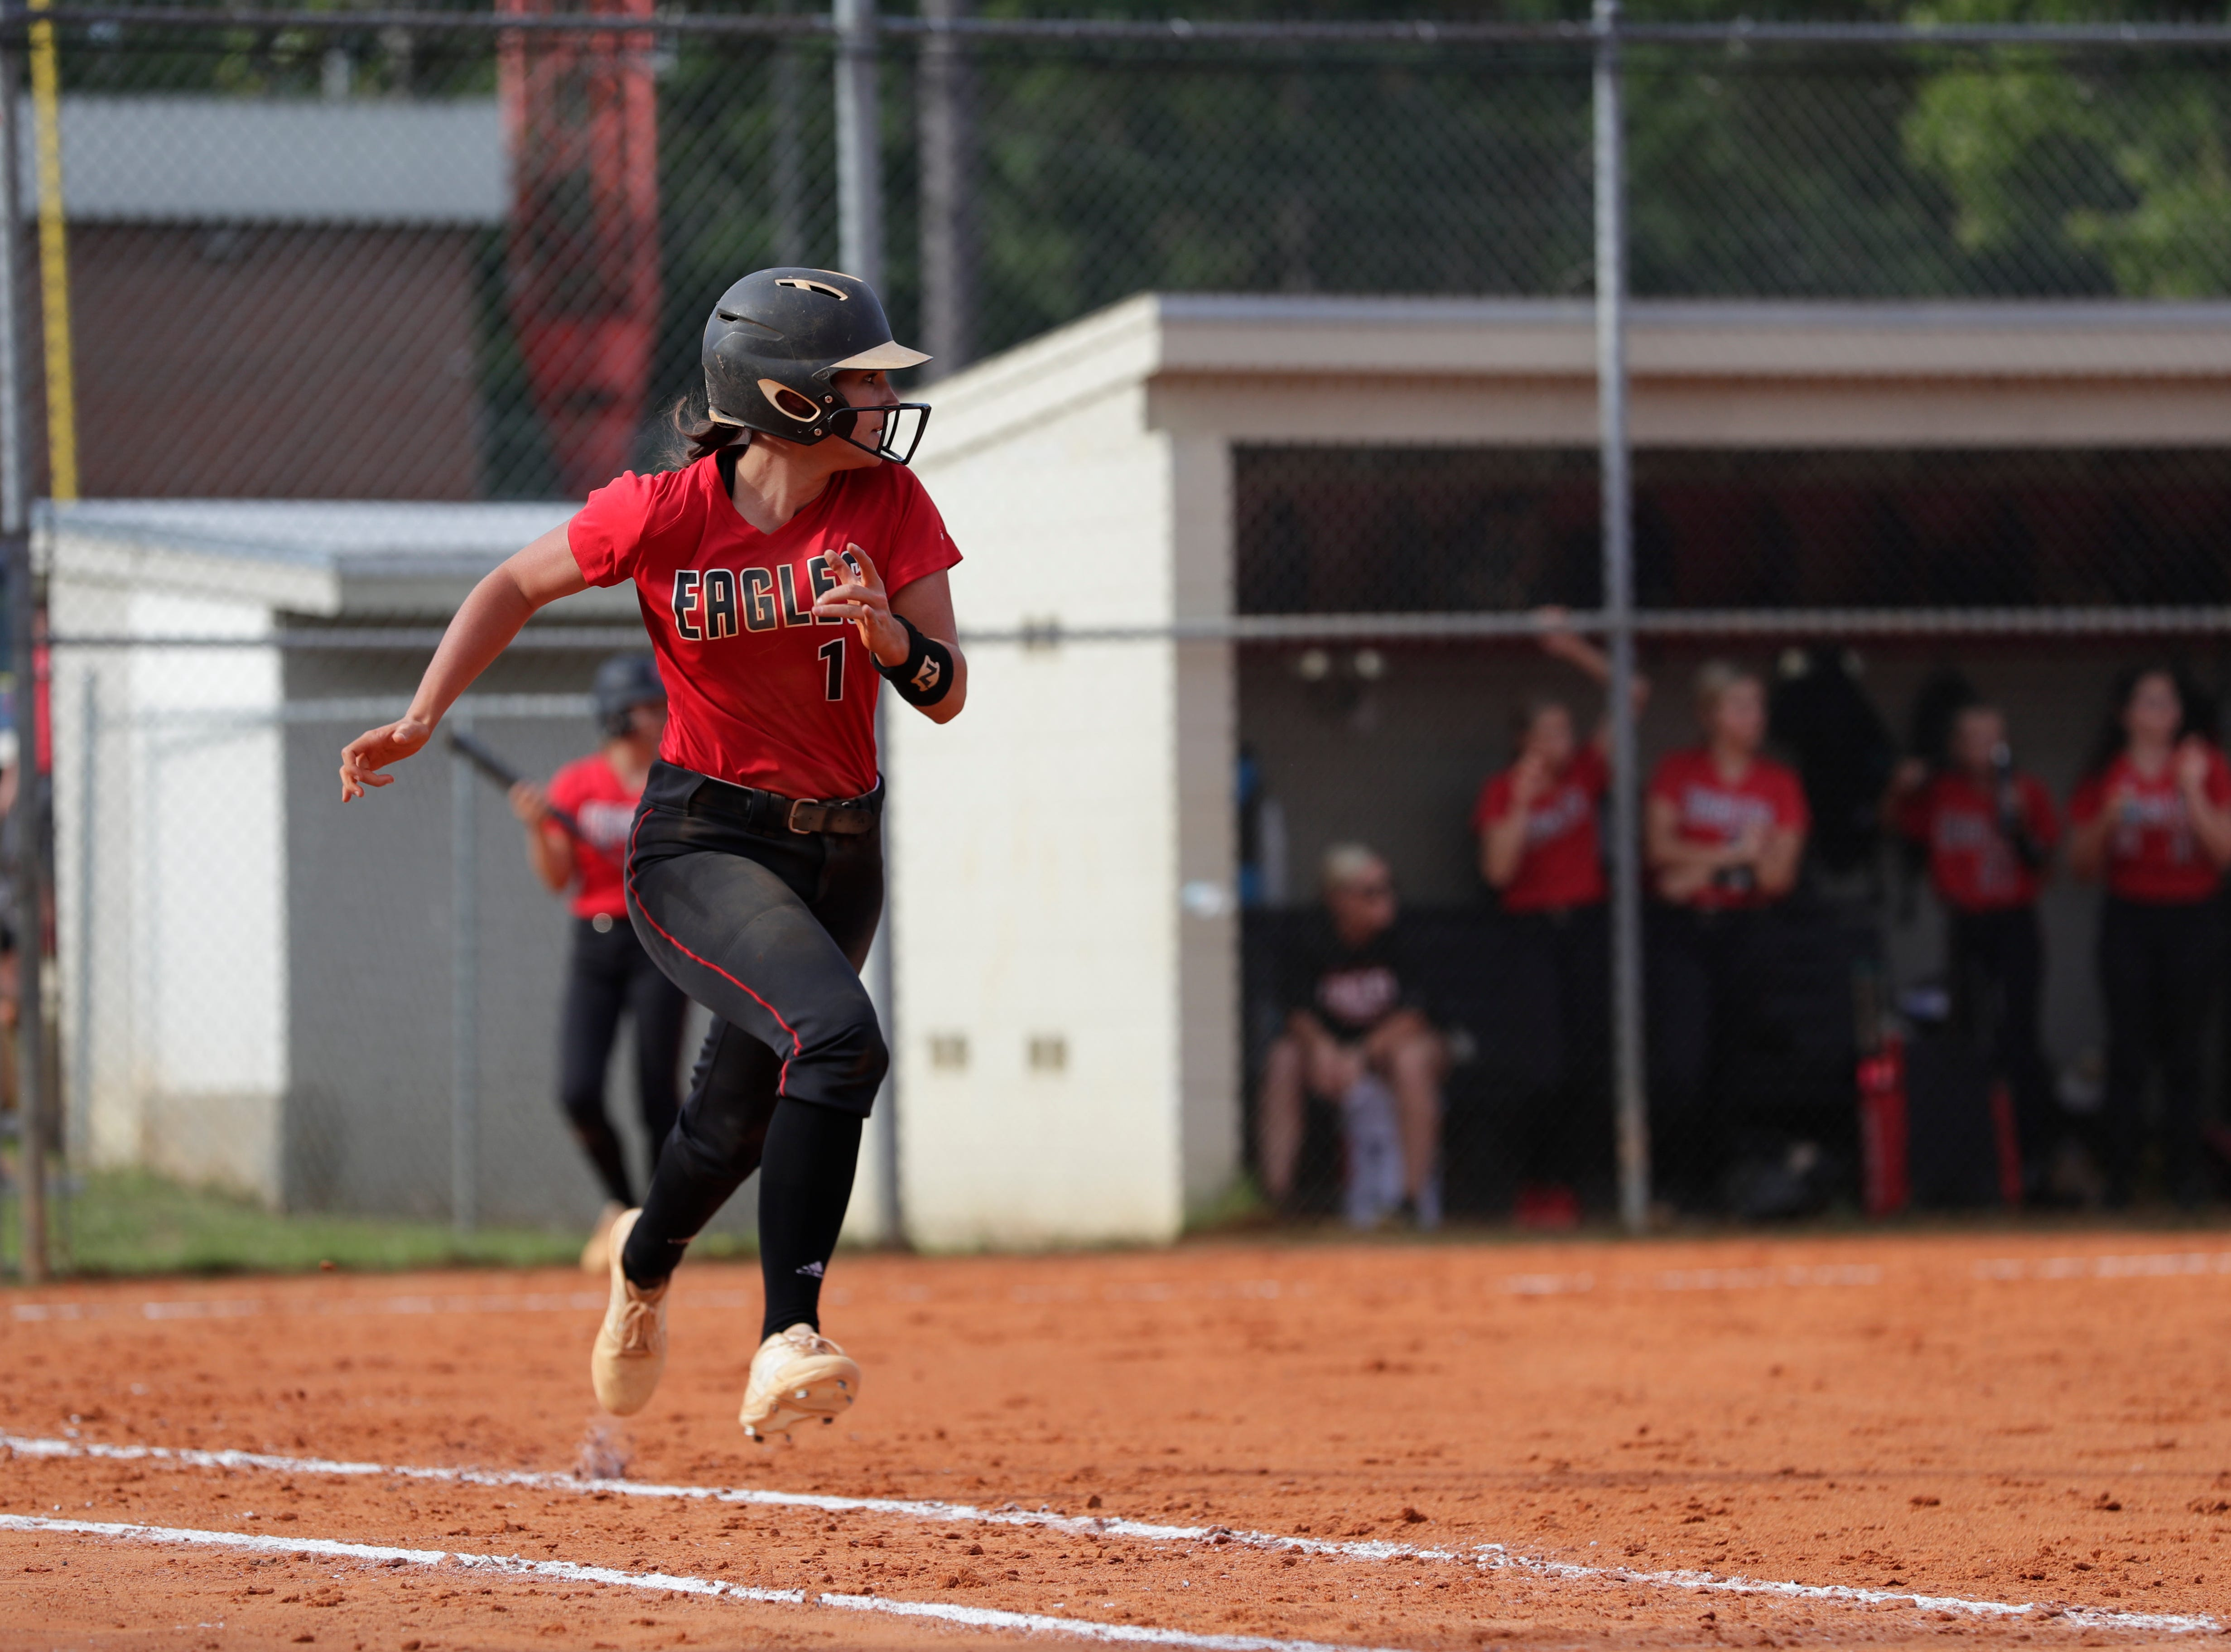 North Florida Christian's Chloe Culp (1) runs to first during the 1-3A regional final game between NFC and University Christian at NFC Tuesday, May 14, 2019. UC defeated NFC 16 to 11 to advance to the state tournament.